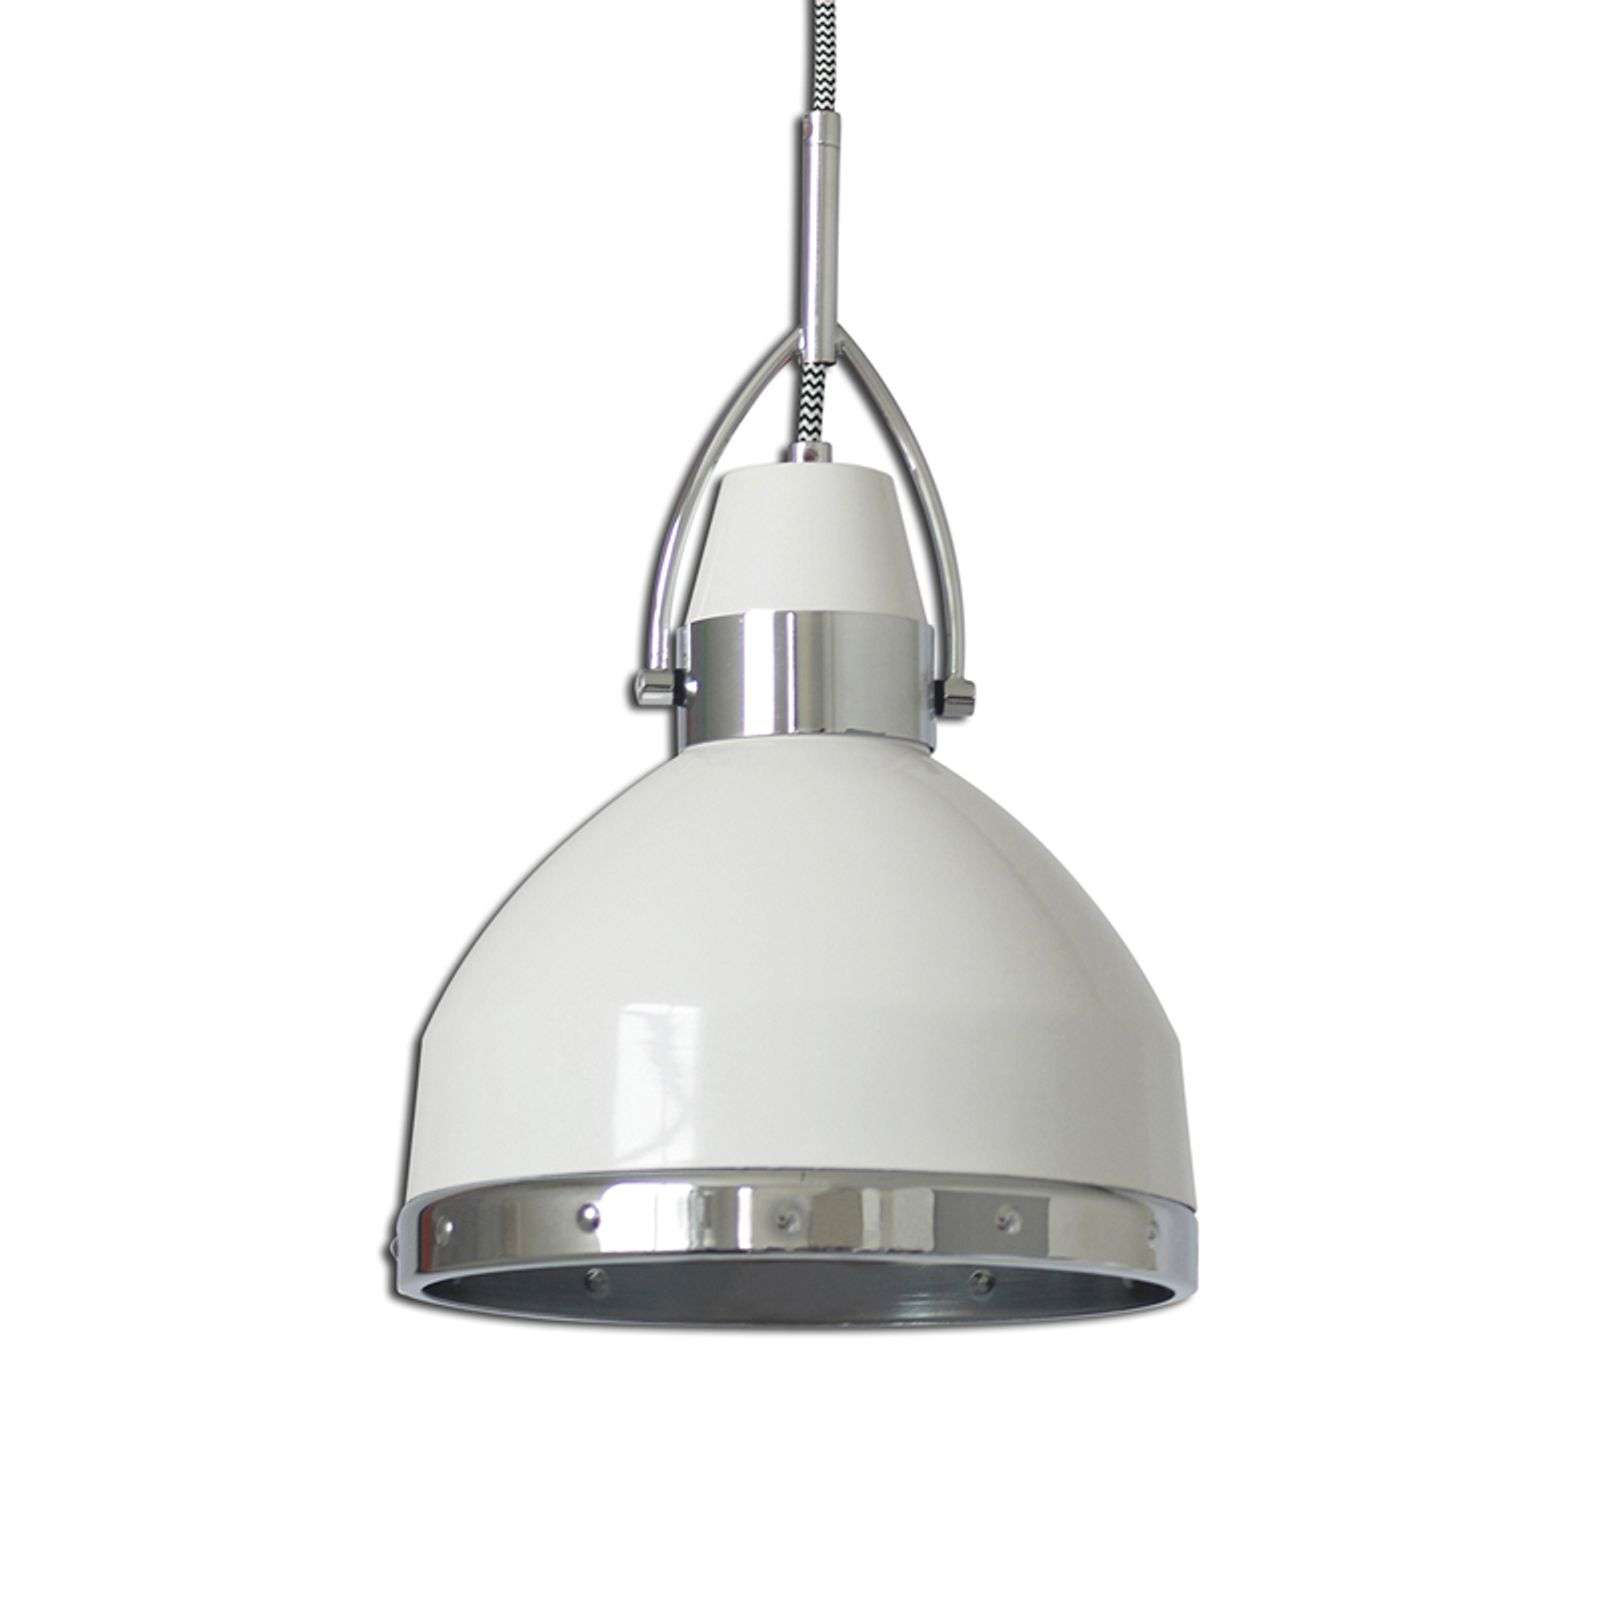 Suspension blanche Britta au design industriel